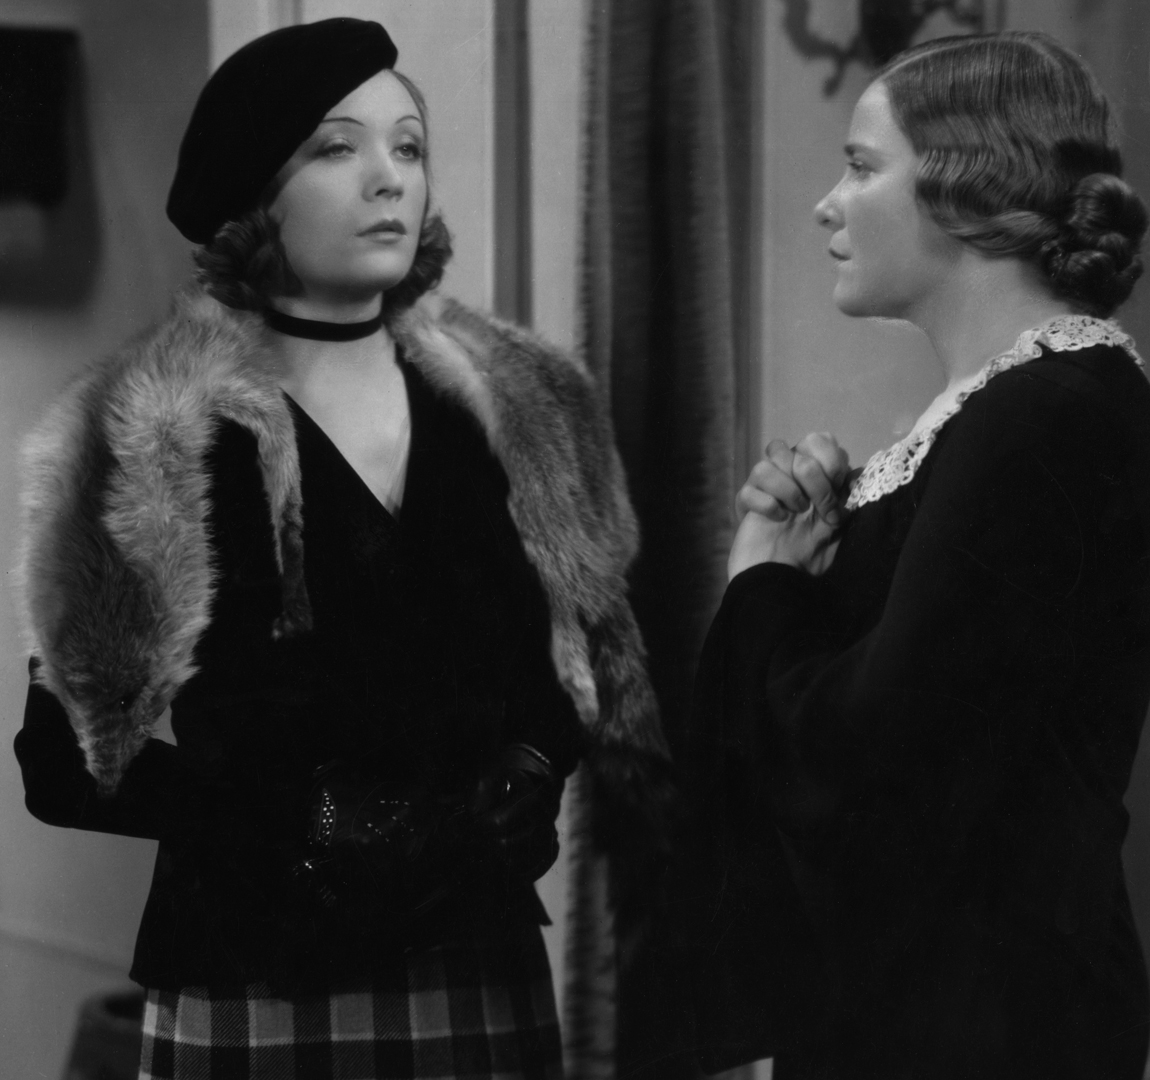 Franziska Kinz and Pola Negri in Mazurka (1935)